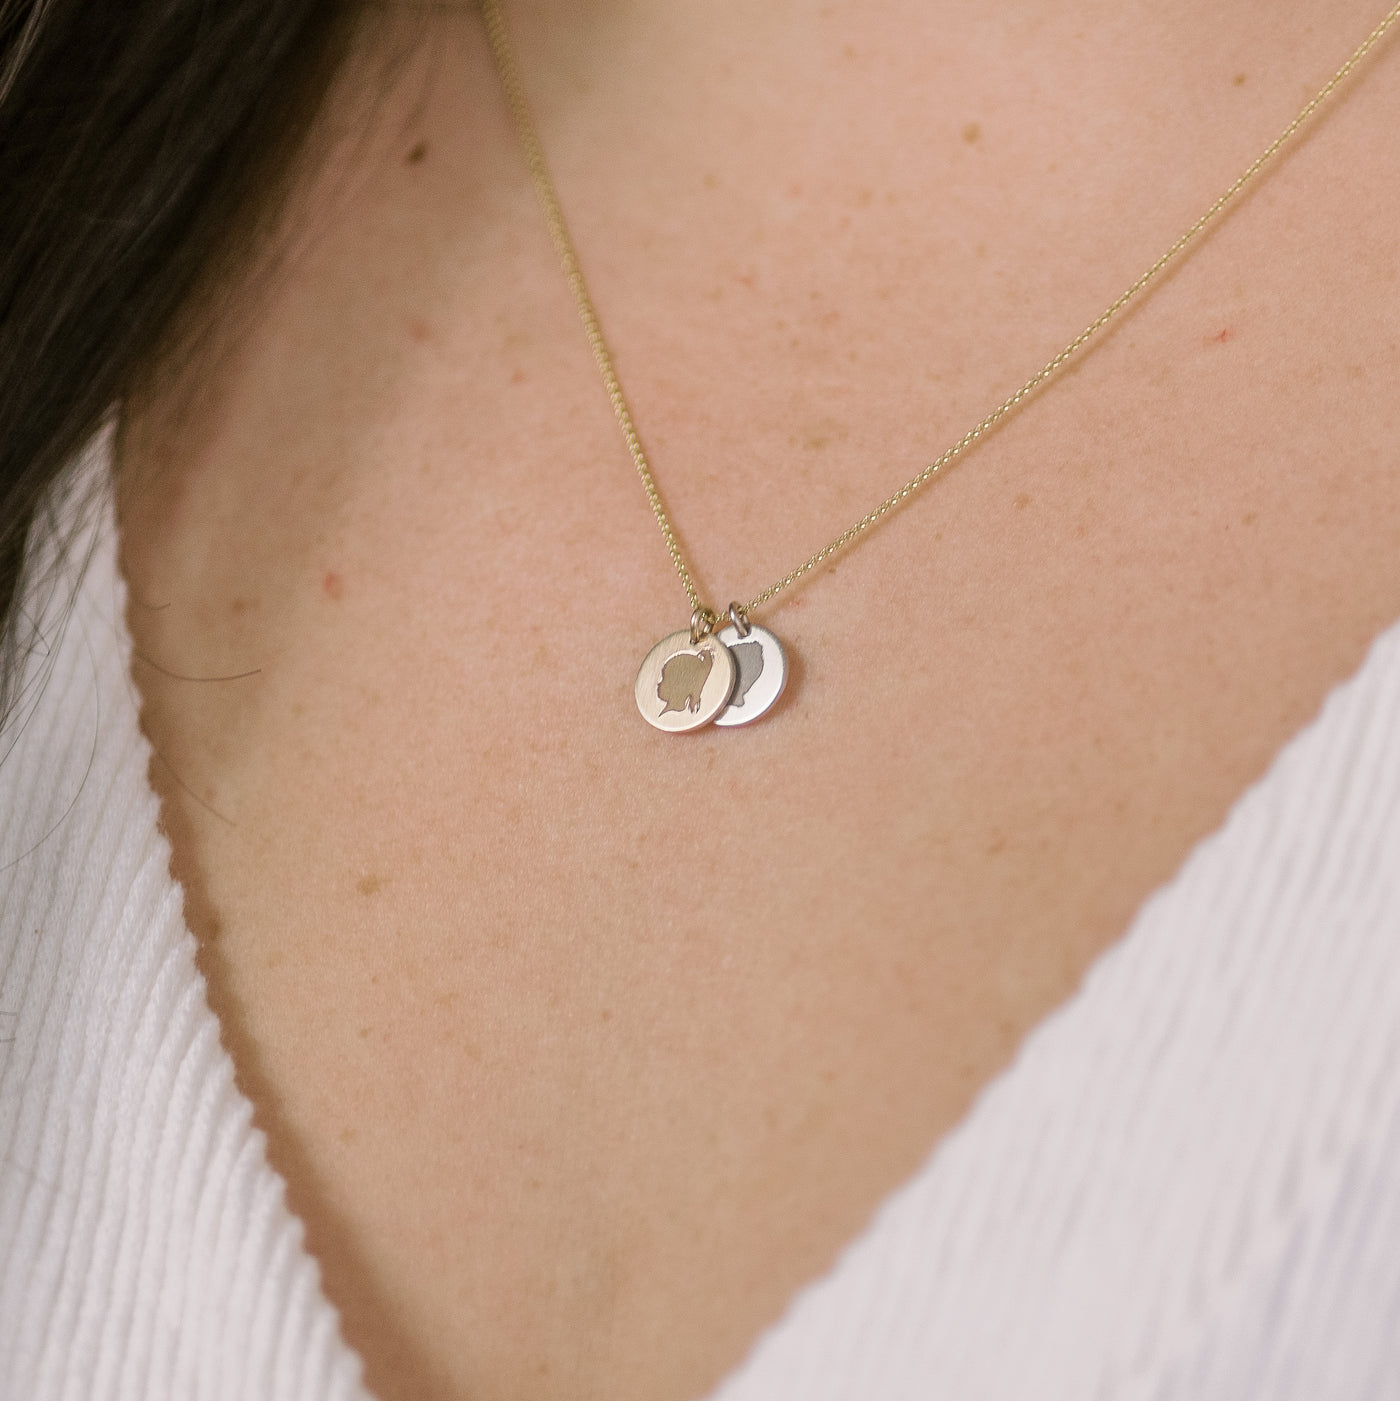 The 14k Solid Gold *Petite* Coin Necklace